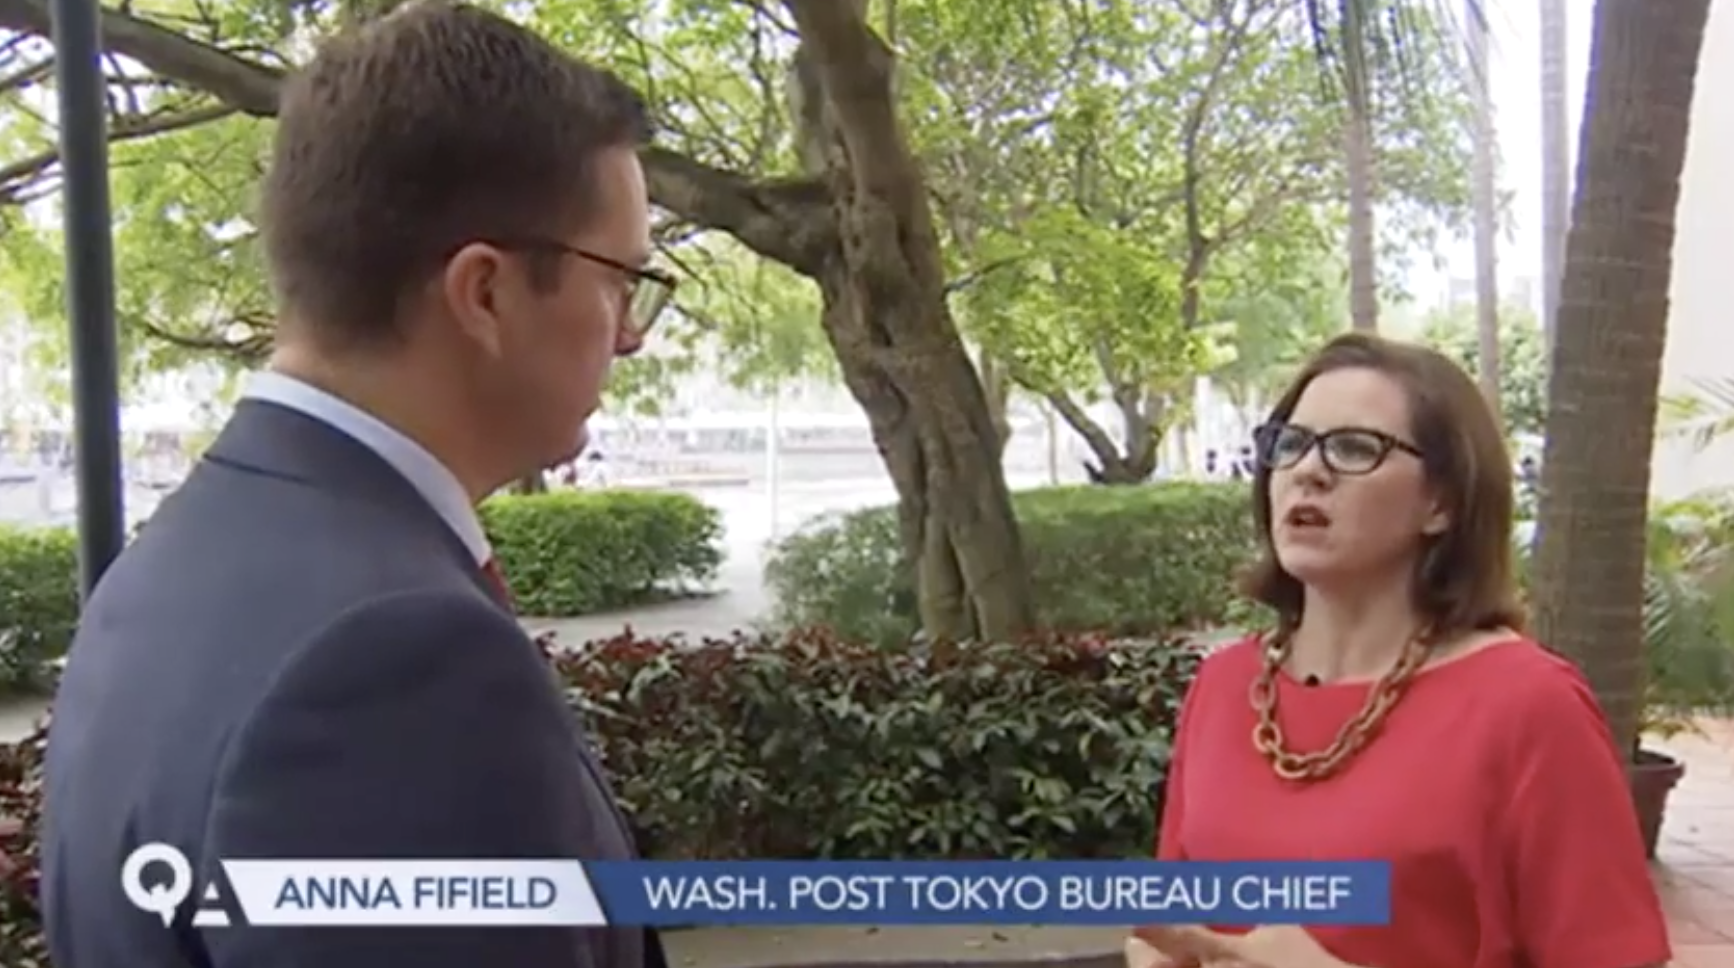 Q+A with Anna Fifield on the US-North Korea Summit - Corin Dann interviews Washington Post Tokyo Chief Anna Fifield about the historic US-North Korea summit.